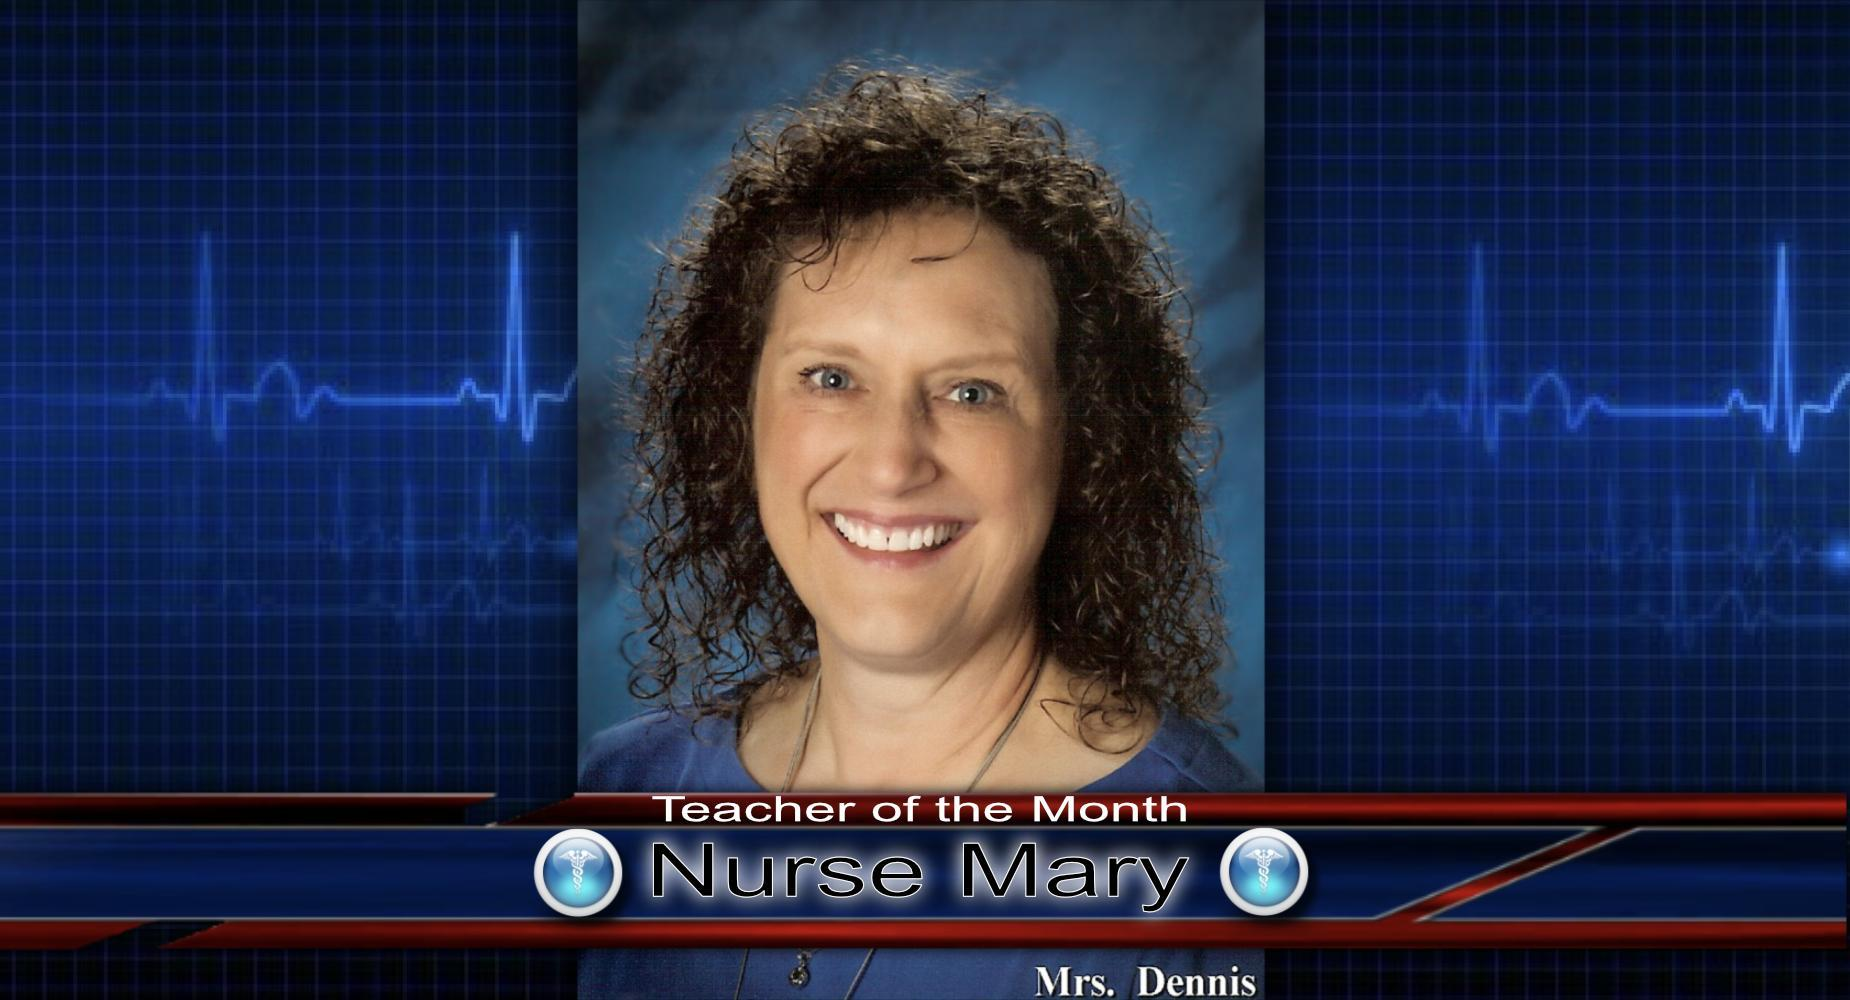 Teacher of the Month - Nurse Mary